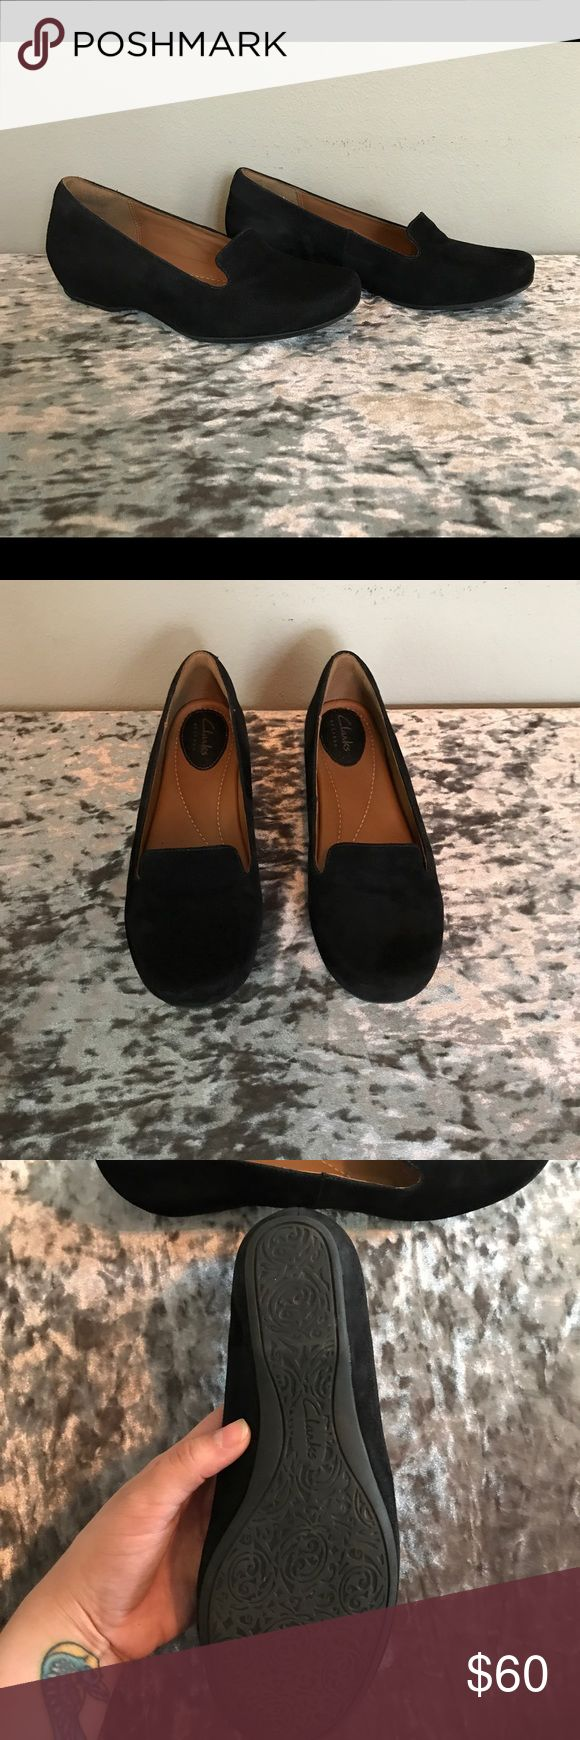 FINAL PRICE REDUCTION Clarks Suede Loafers These shoes are in excellent condition! They are comfy and look super cute with skinny jeans. Let me know if you have any questions. :) Like New Clarks Shoes Flats & Loafers